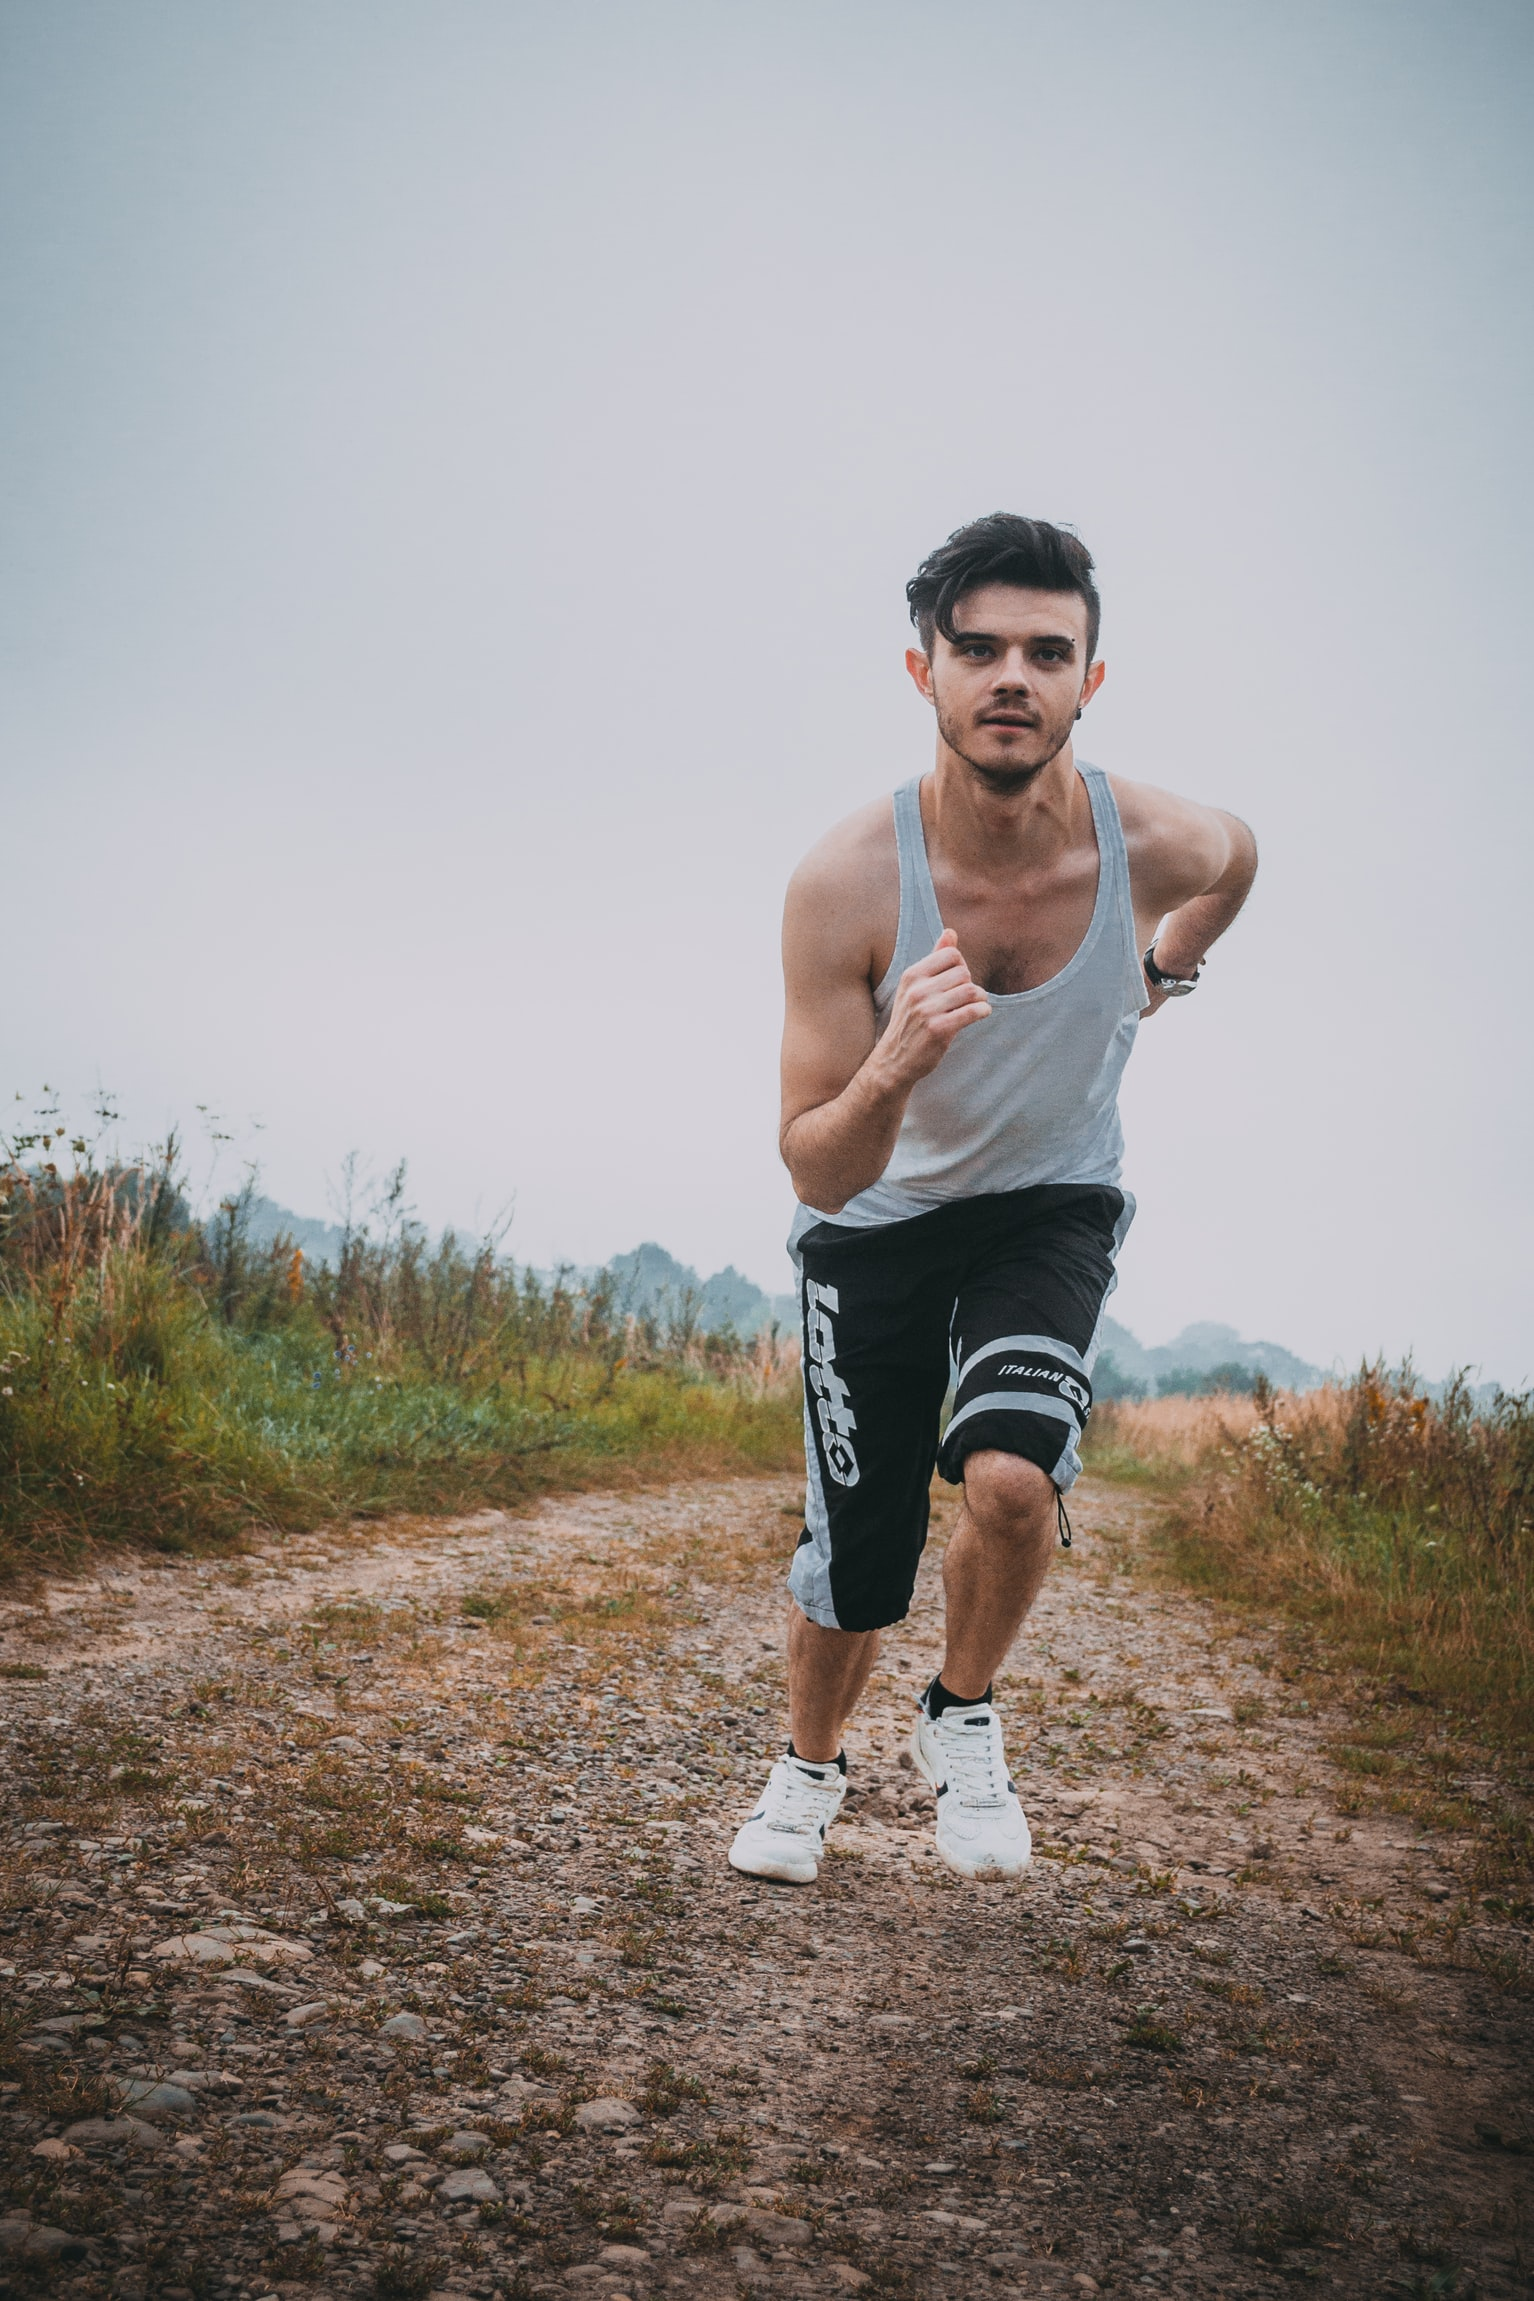 man running wearing one of the best running shorts